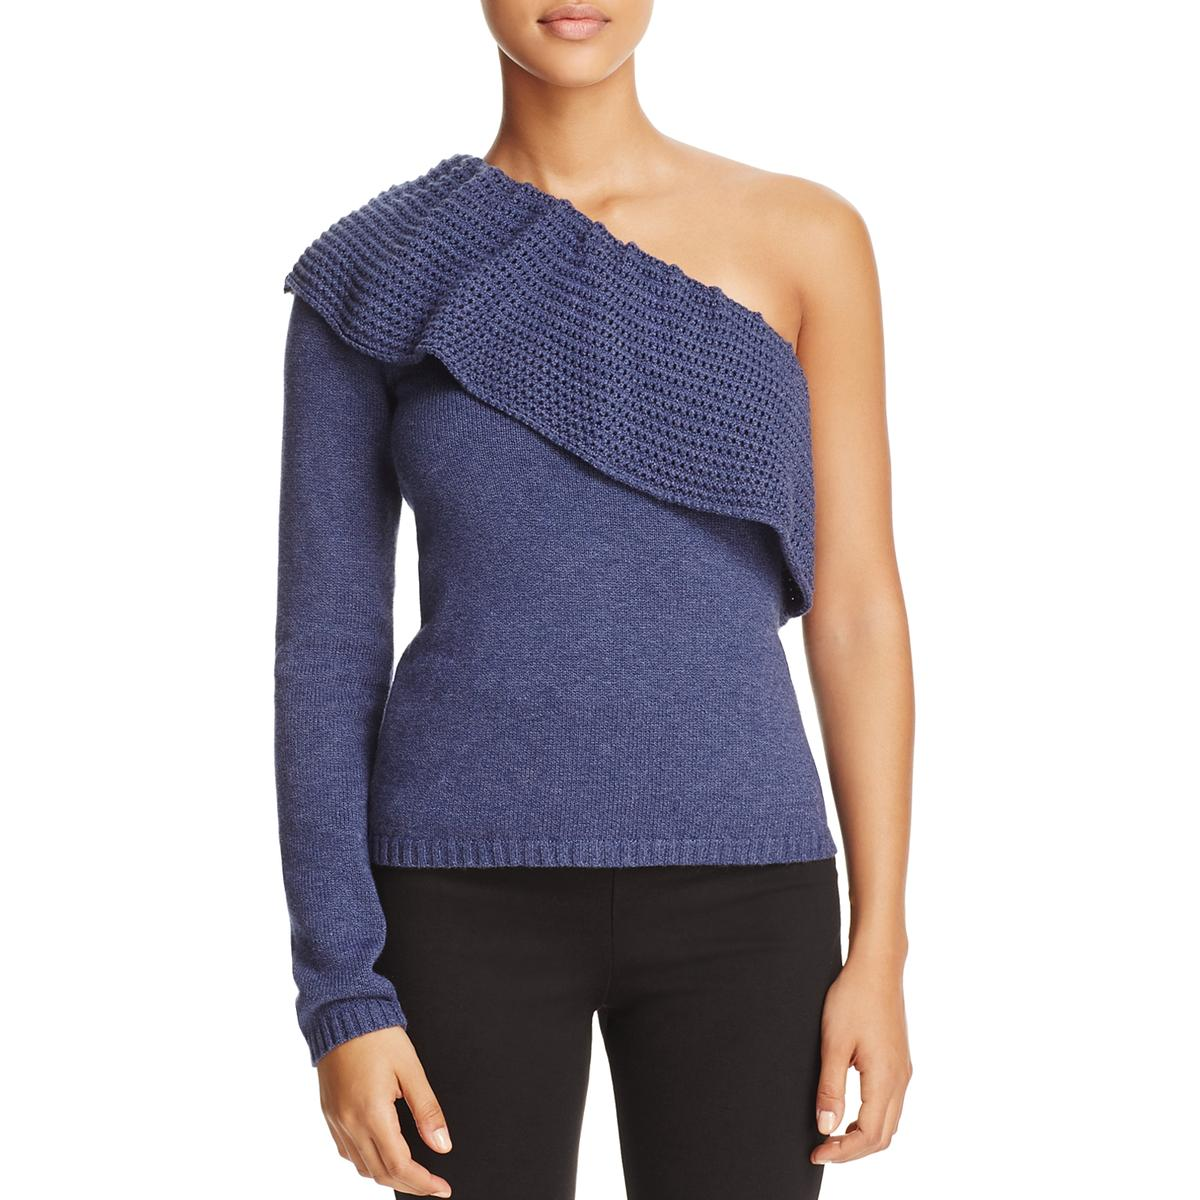 6fdf170cbc9 Details about Ella Moss Womens Loli Blue One Shoulder Ruffled Pullover  Sweater Top L BHFO 7784